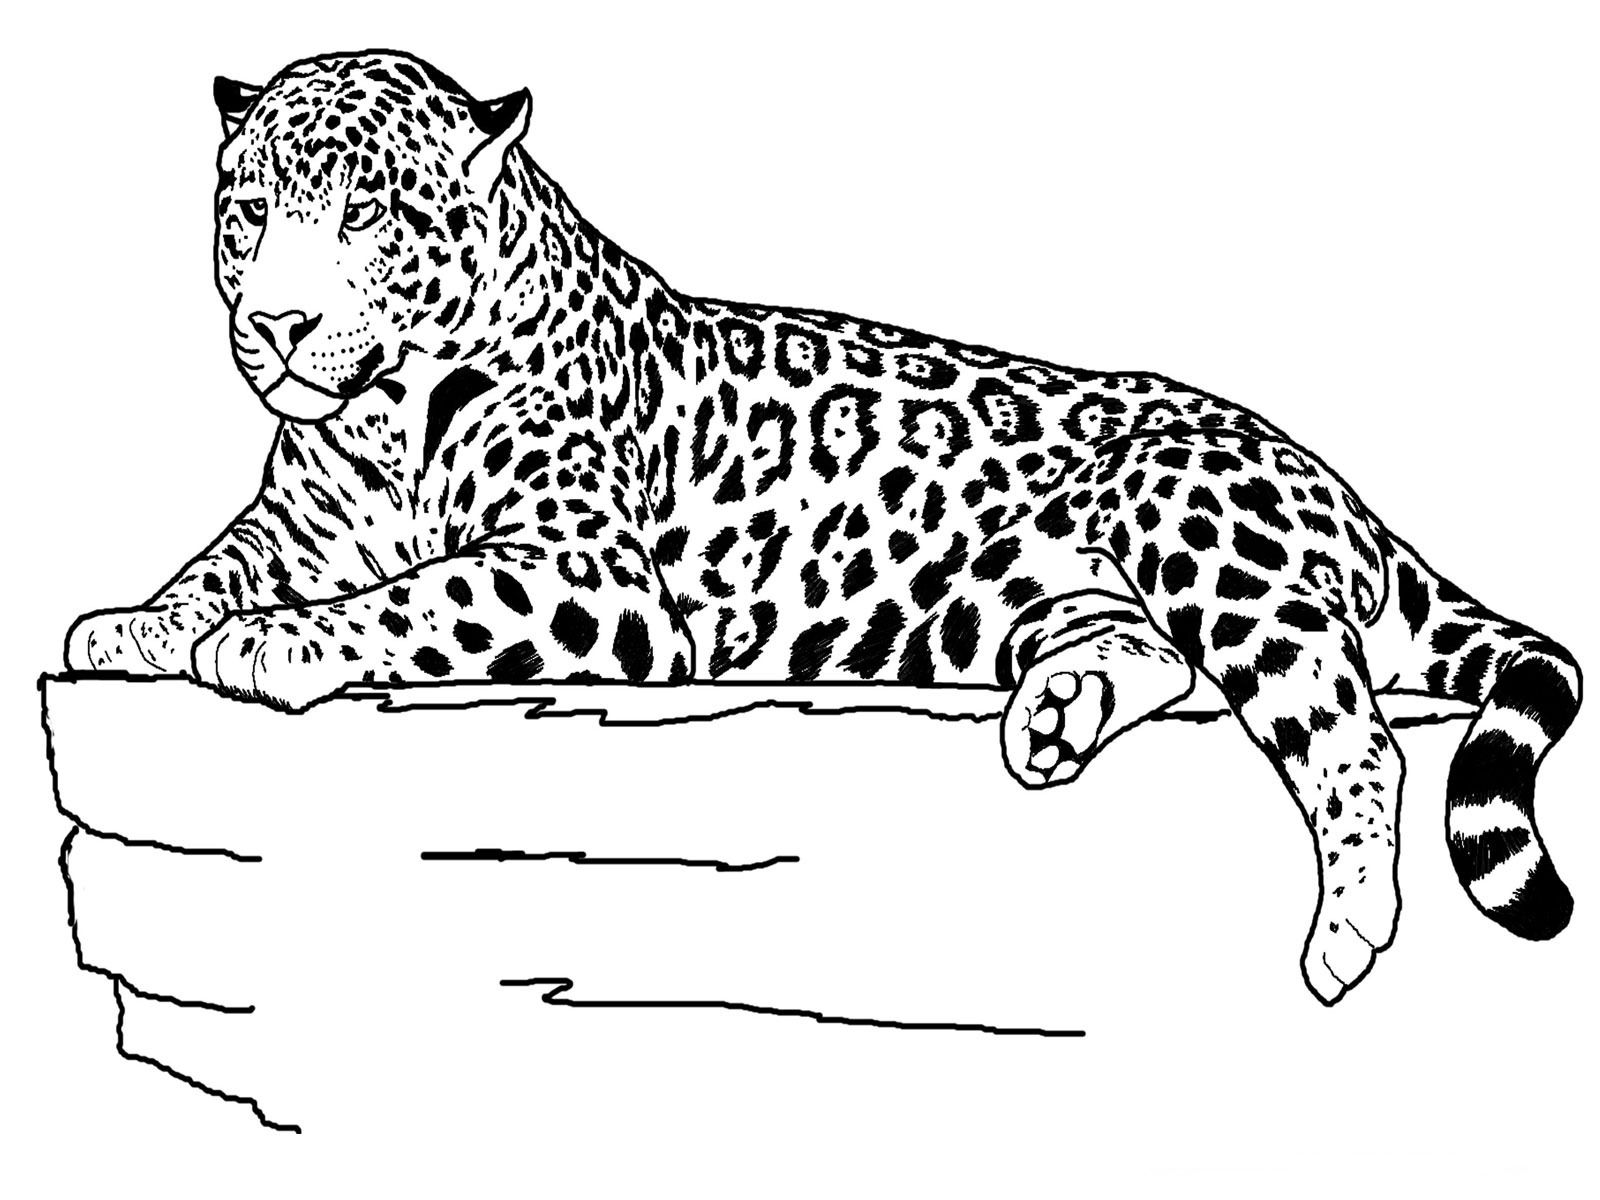 Free colouring pages zoo animals - Zoo Animal Coloring Pages Also Available Are Farm Animals All Printable